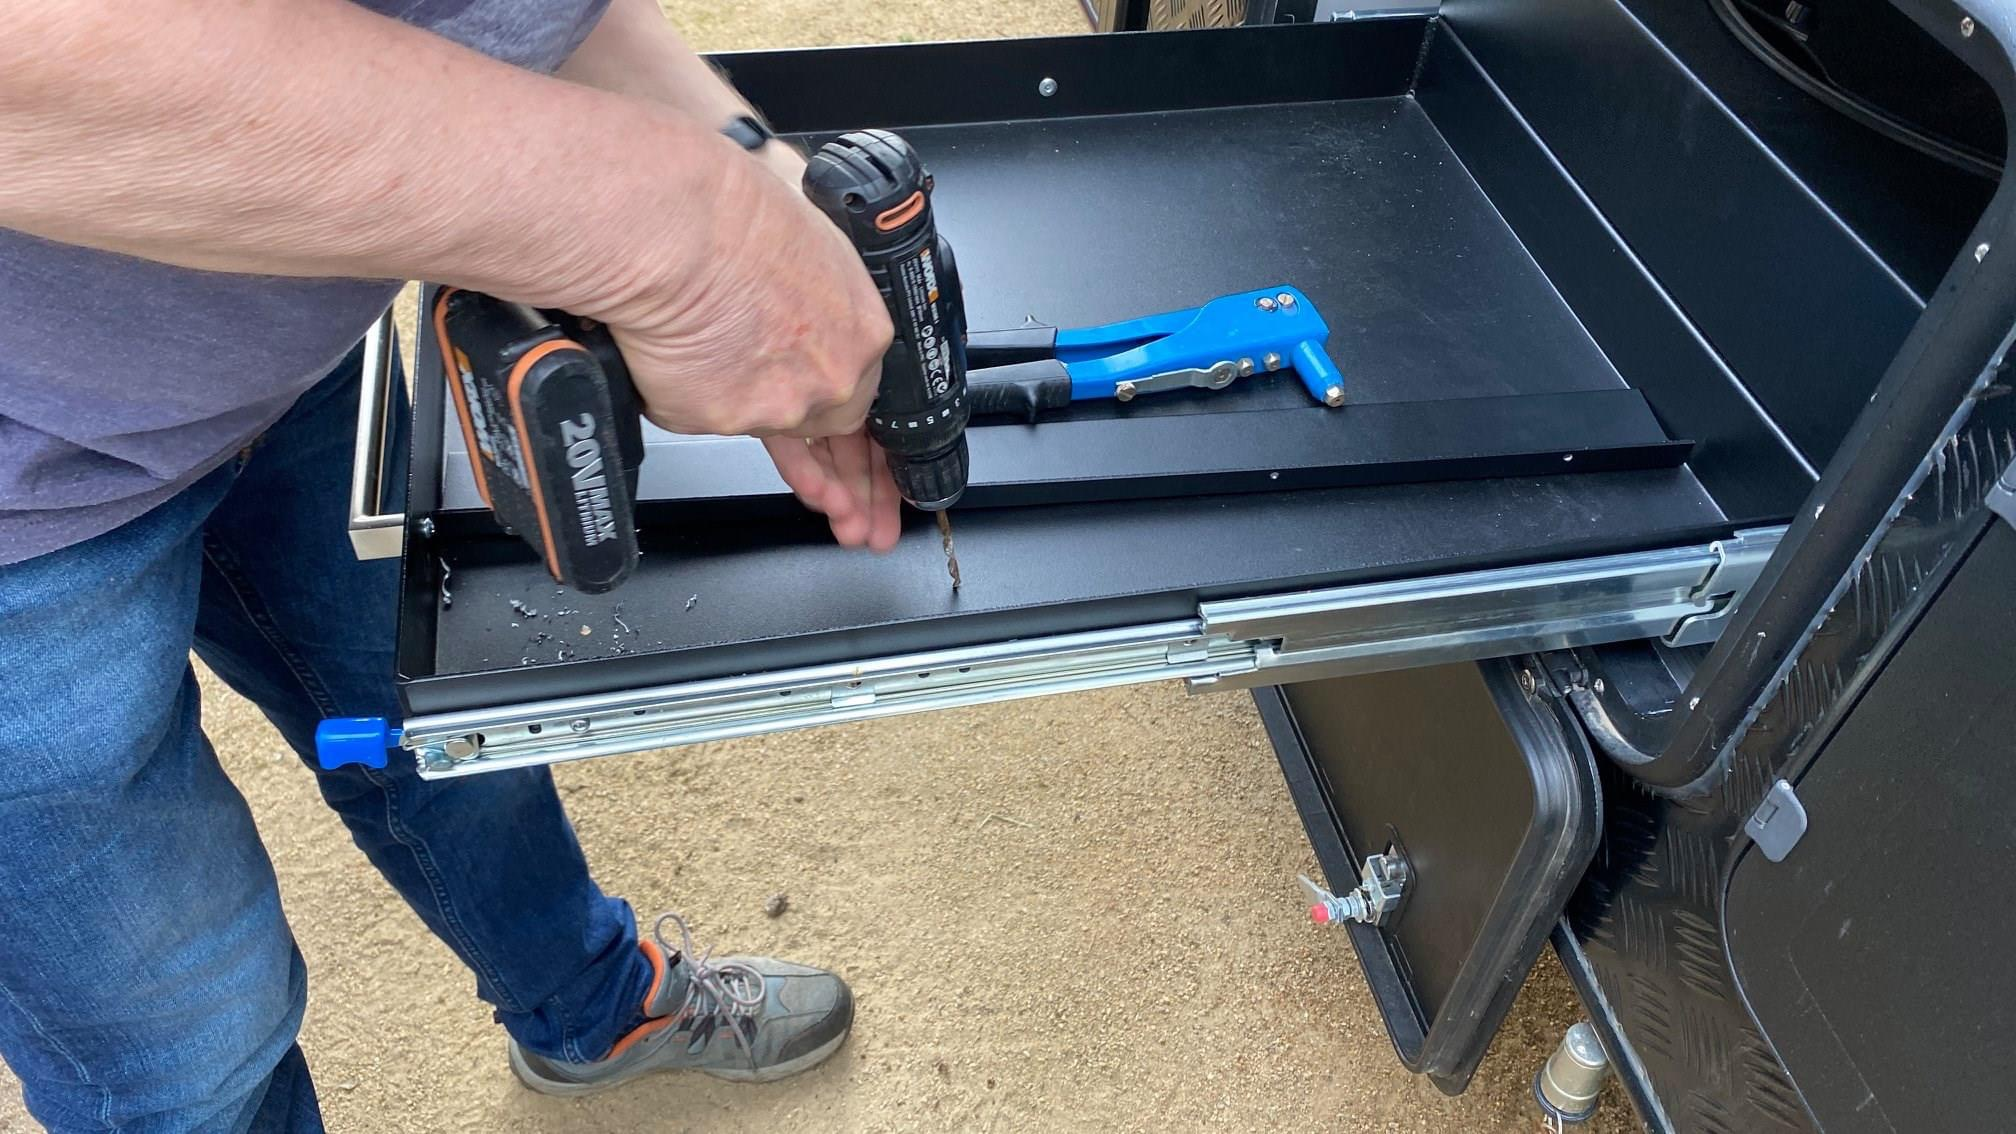 8. Drilling And Riveting The Provided Divider In Place